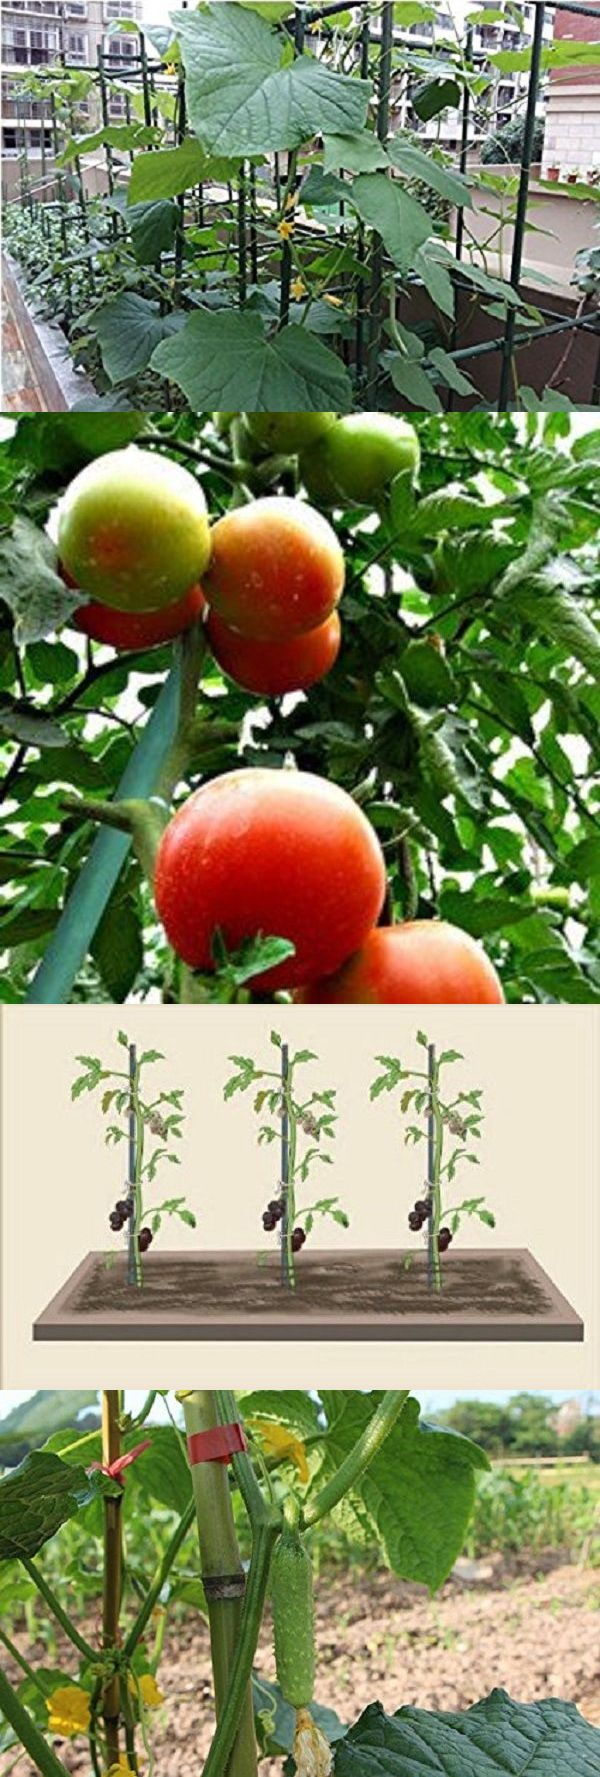 Plant Ties and Supports 181001: Ecostake Garden Plant Stakes Tomato Pepper Eggplant Stakes With Stretch Ties -> BUY IT NOW ONLY: $154.3 on eBay!